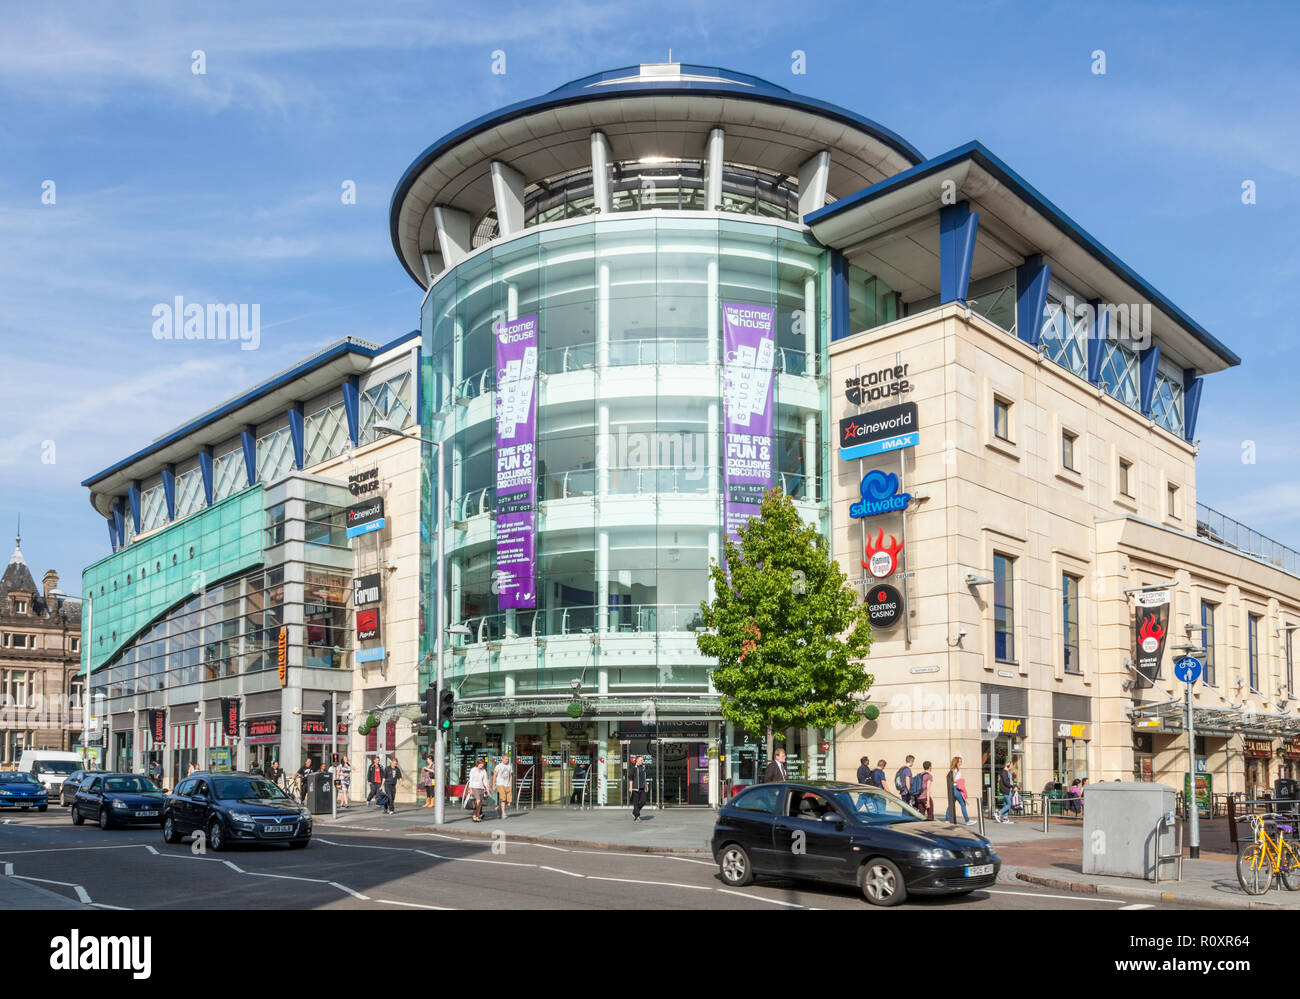 The Corner House, a Cineworld multiplex cinema with bars and restaurants in Nottingham, England, UK - Stock Image